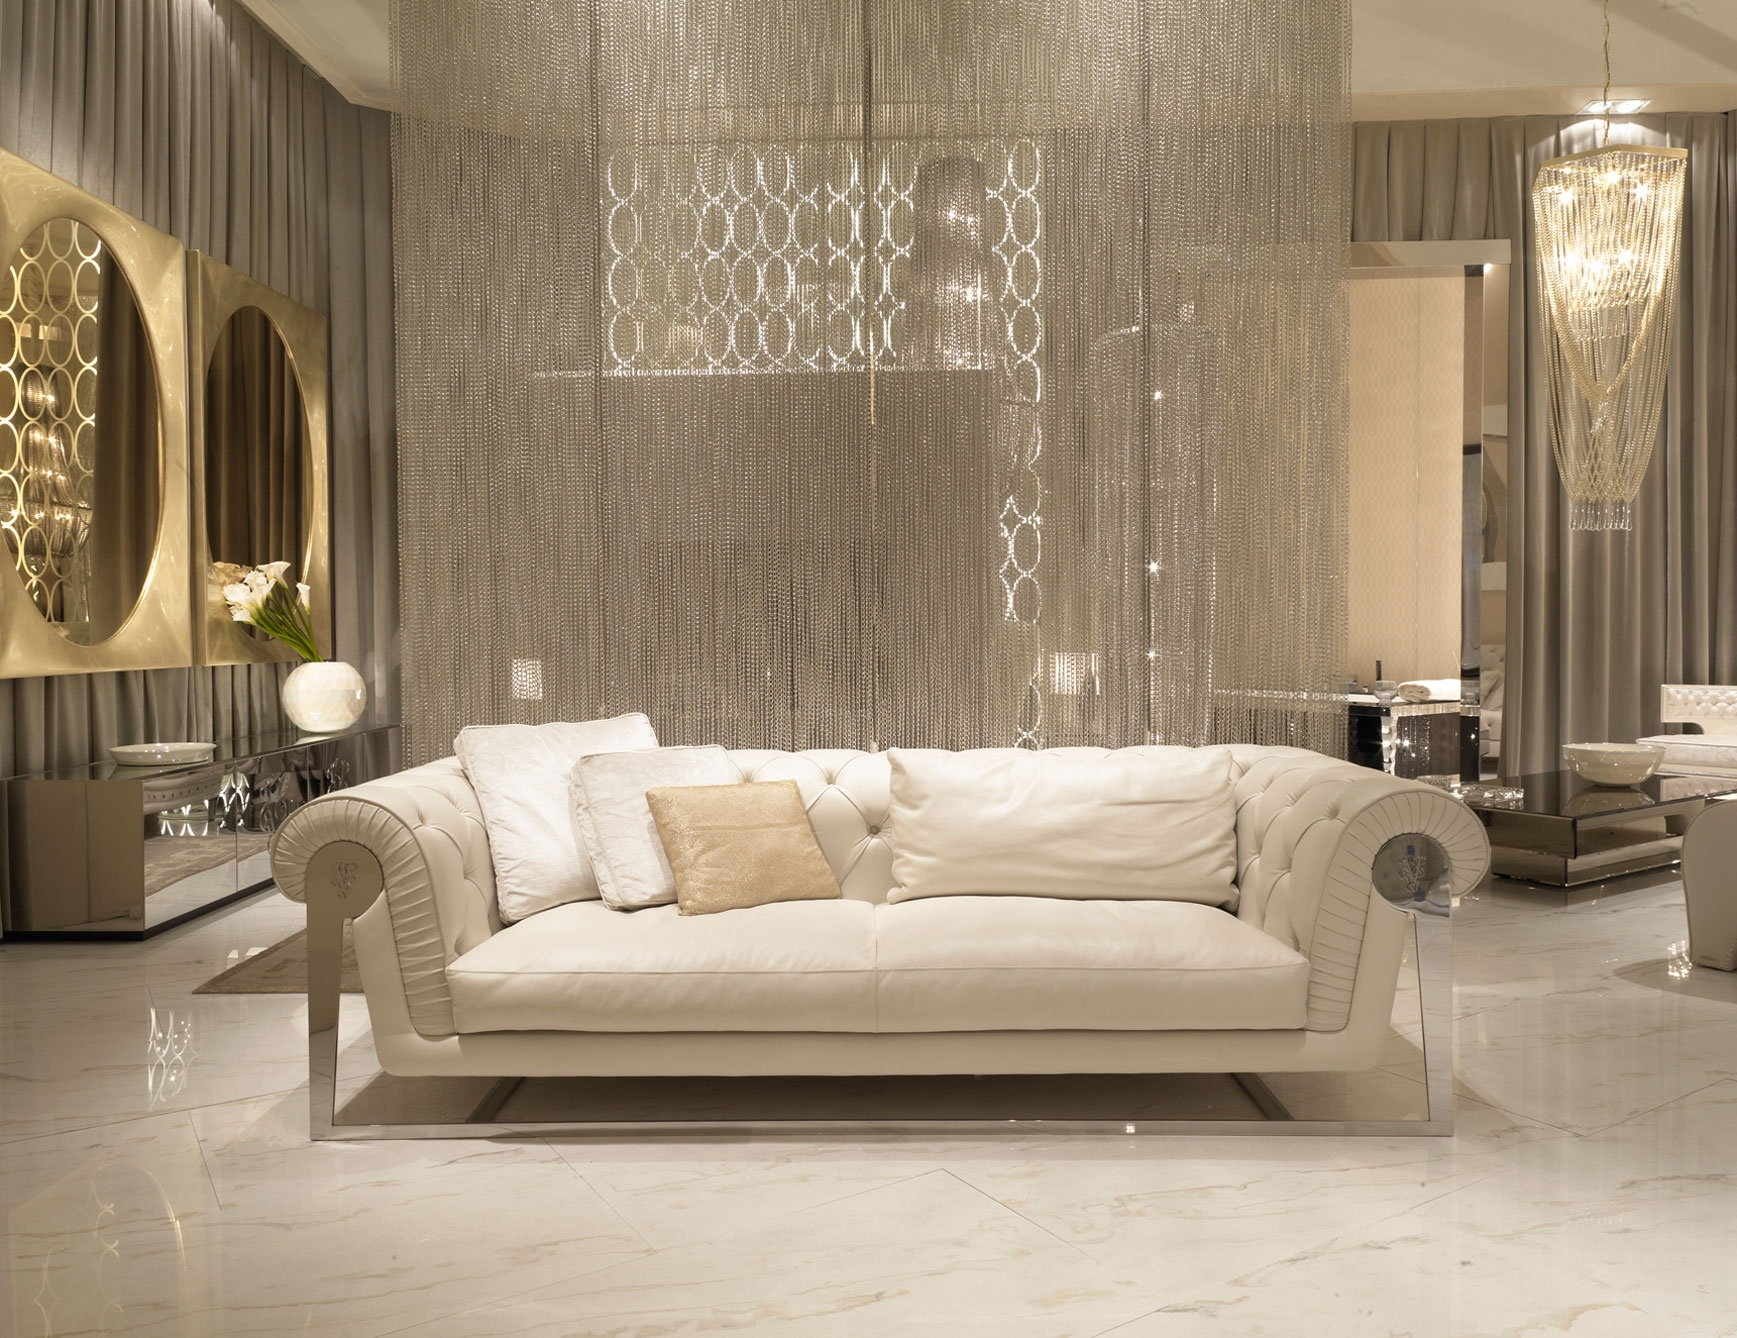 Nella Vetrina Visionnaire Ipe Cavalli Chester Dudley Luxury Sofa Inside Modern Italian Chandeliers (View 11 of 15)